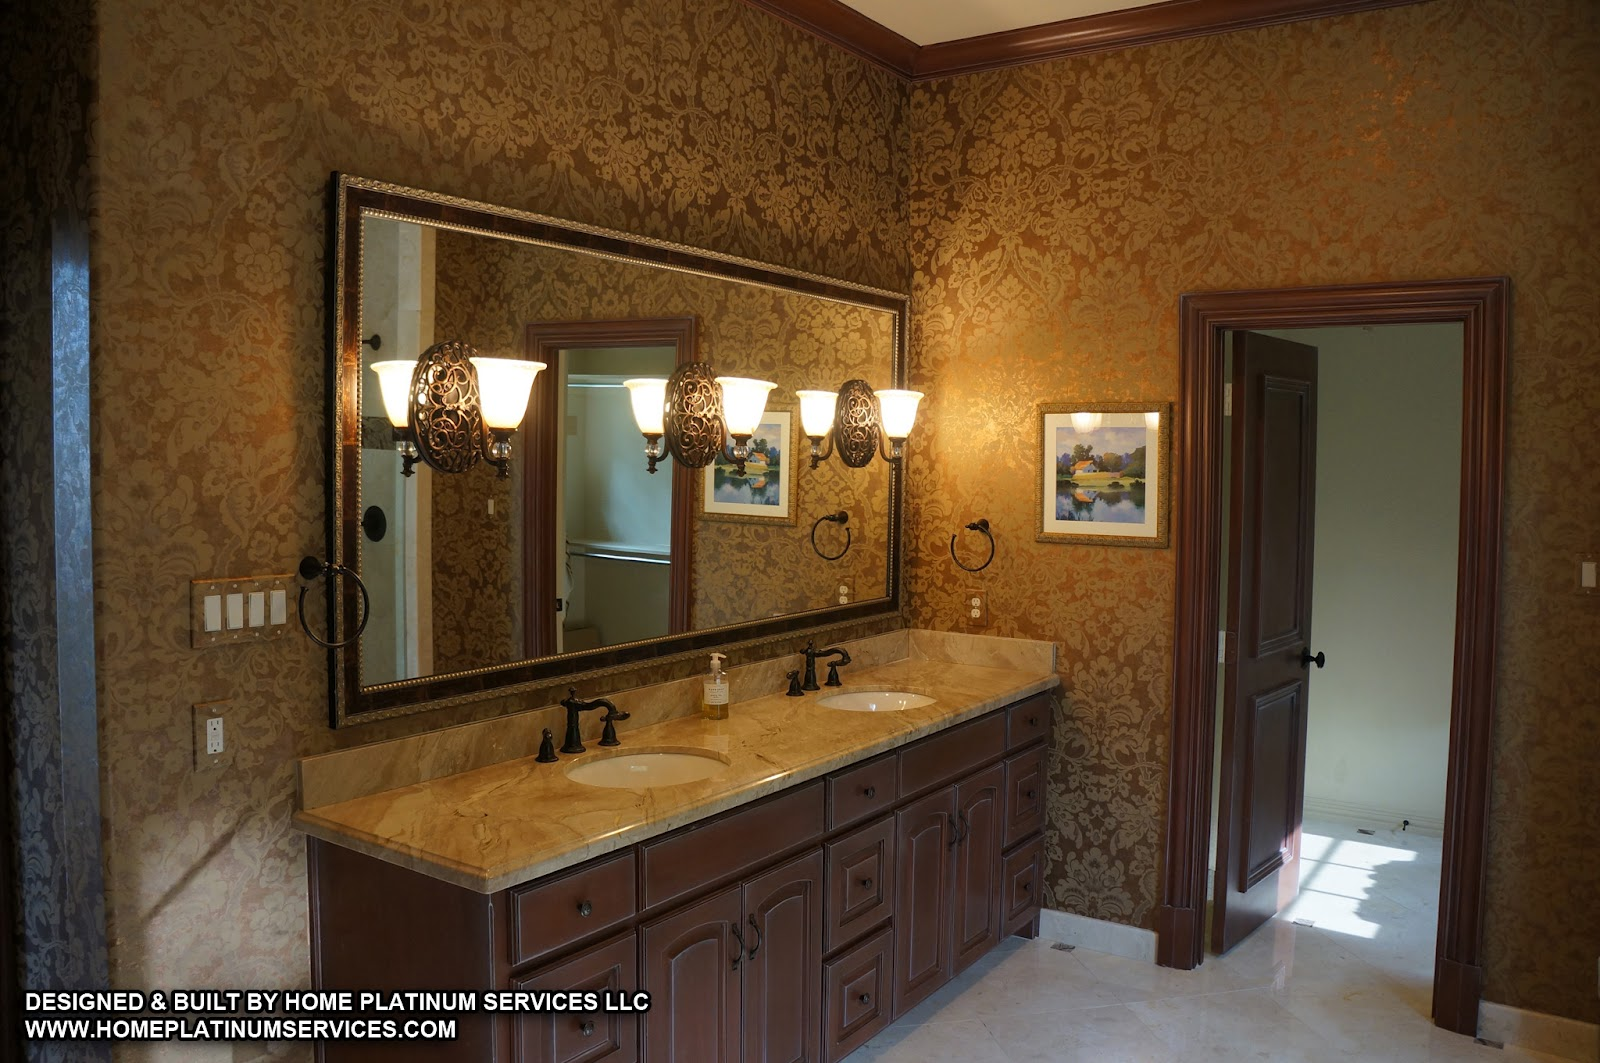 Bathroom remodeling in frisco for Bath remodel frisco tx